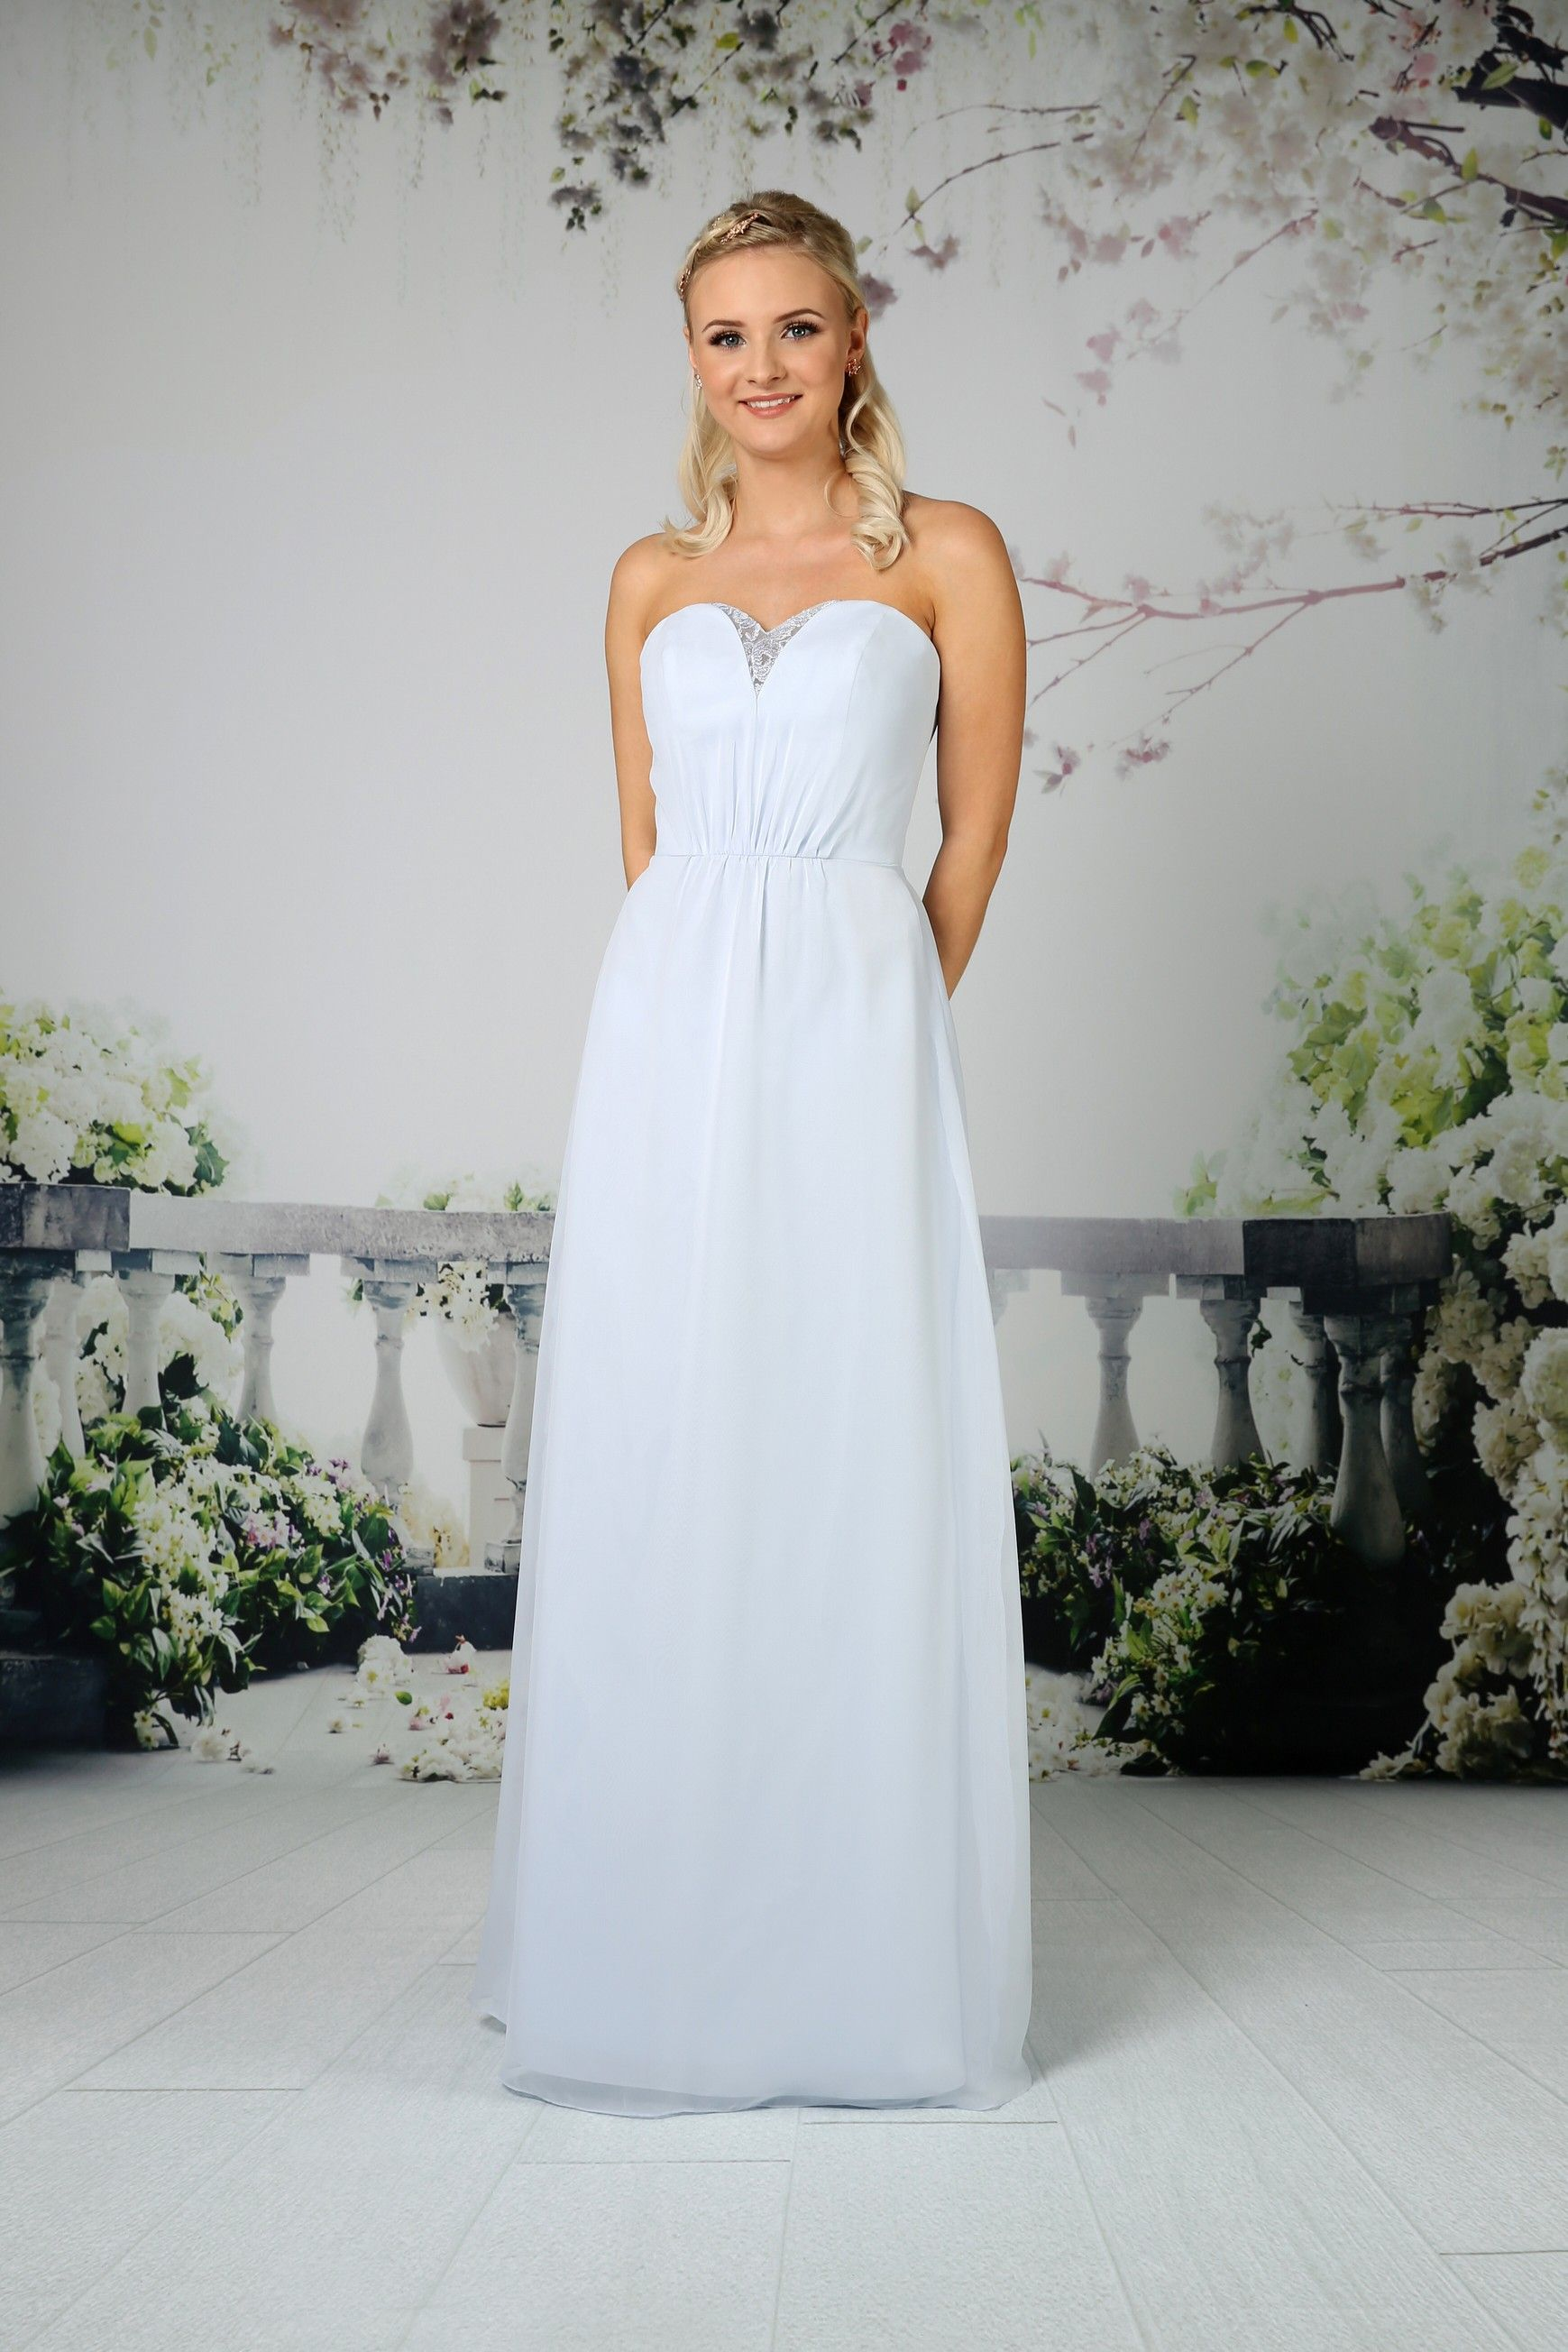 This stunning strapless sweetheart gown has sheer illusion